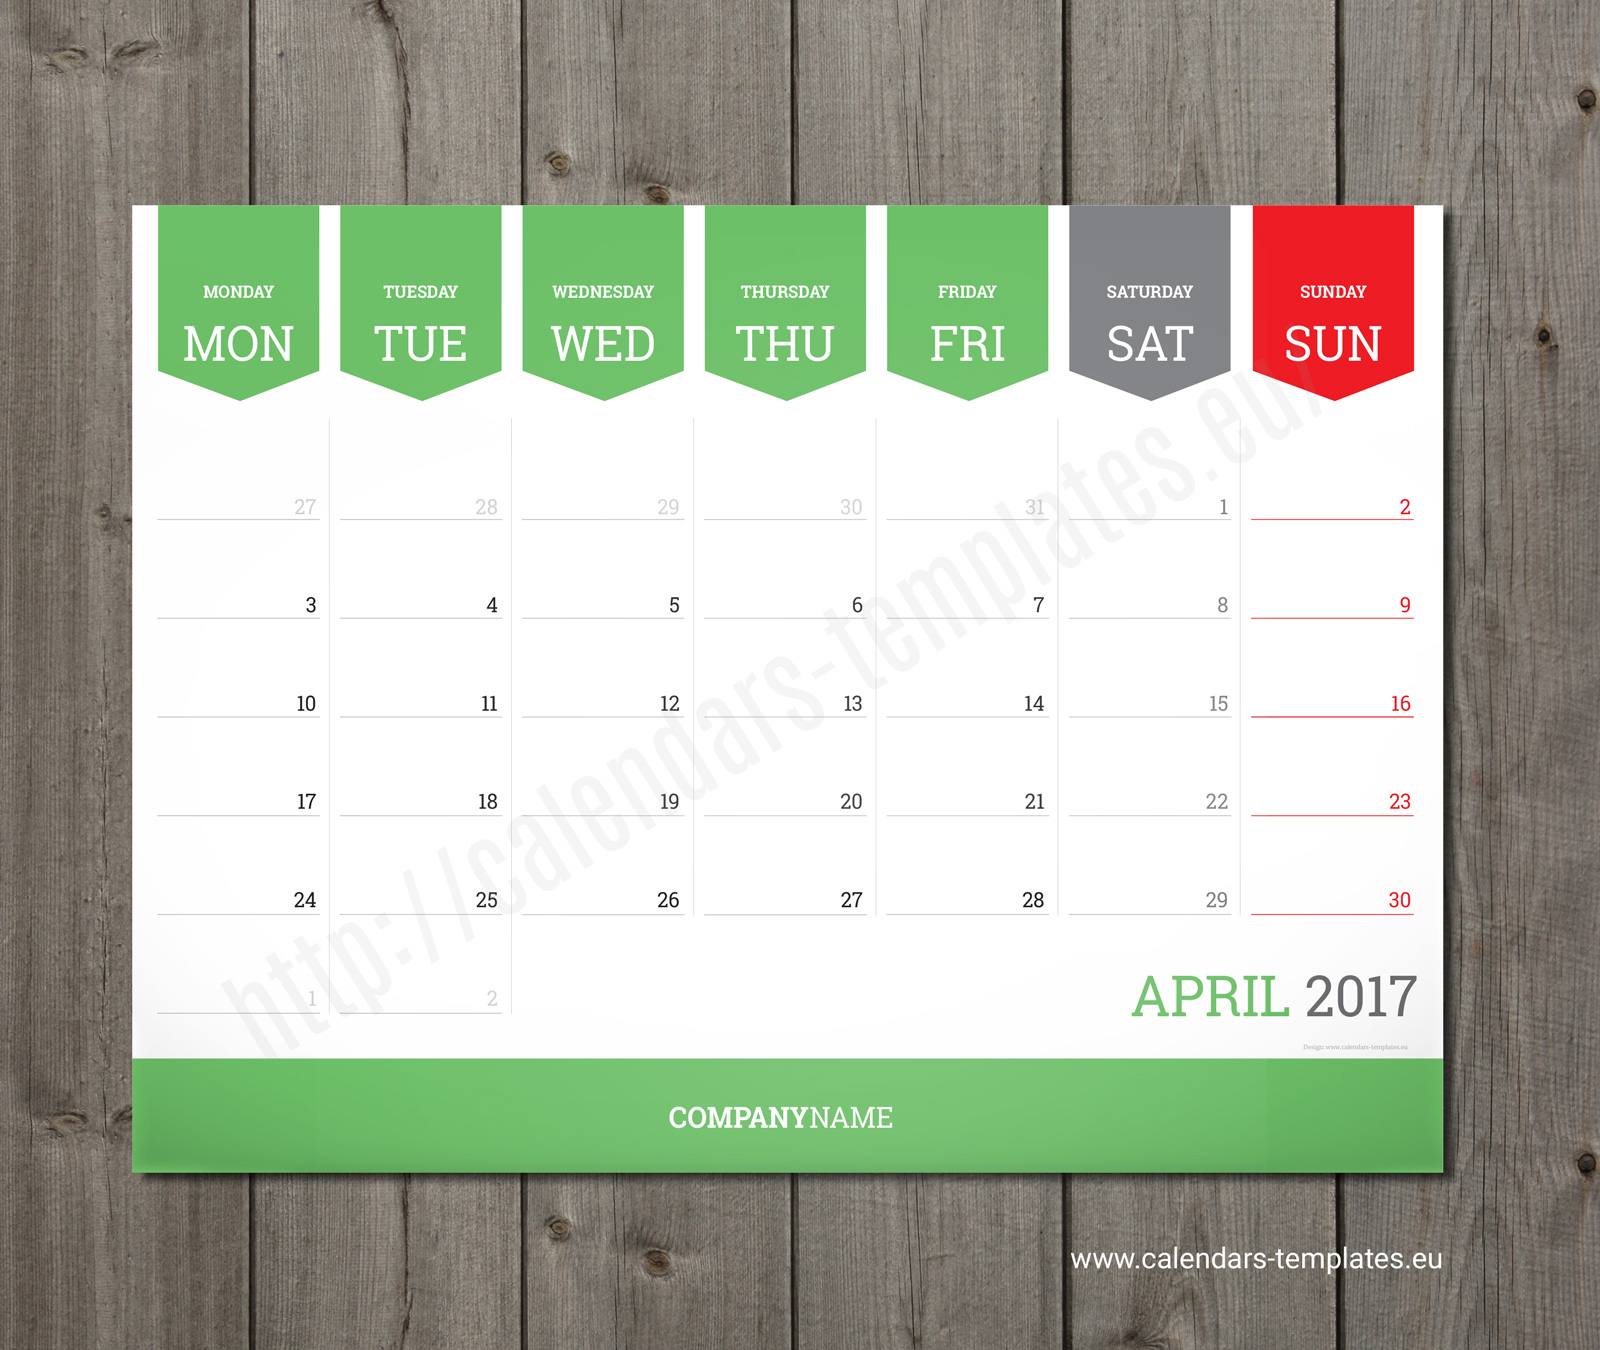 Calendar Planner Sample : Monthly calendar planner wall or table pad